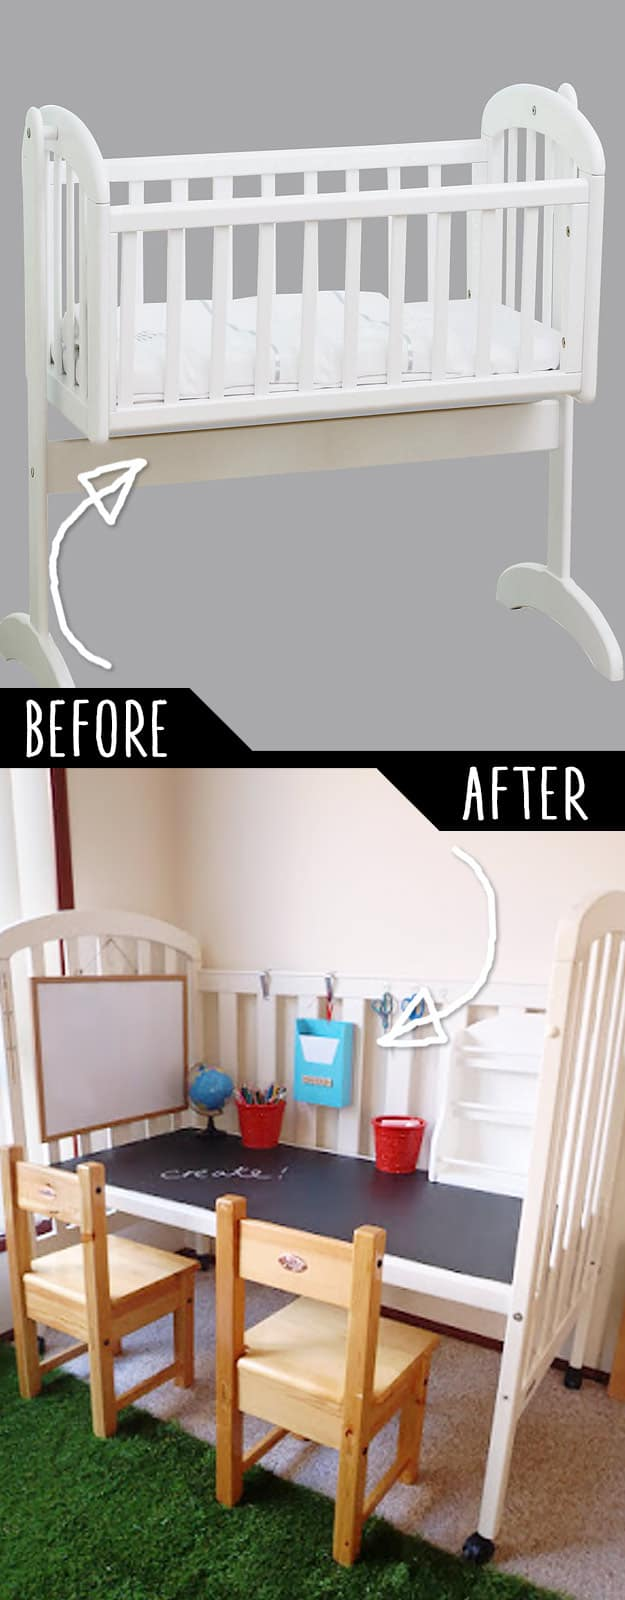 Ingenious Furniture Hacks You Ought To Try-homesthetics (28)